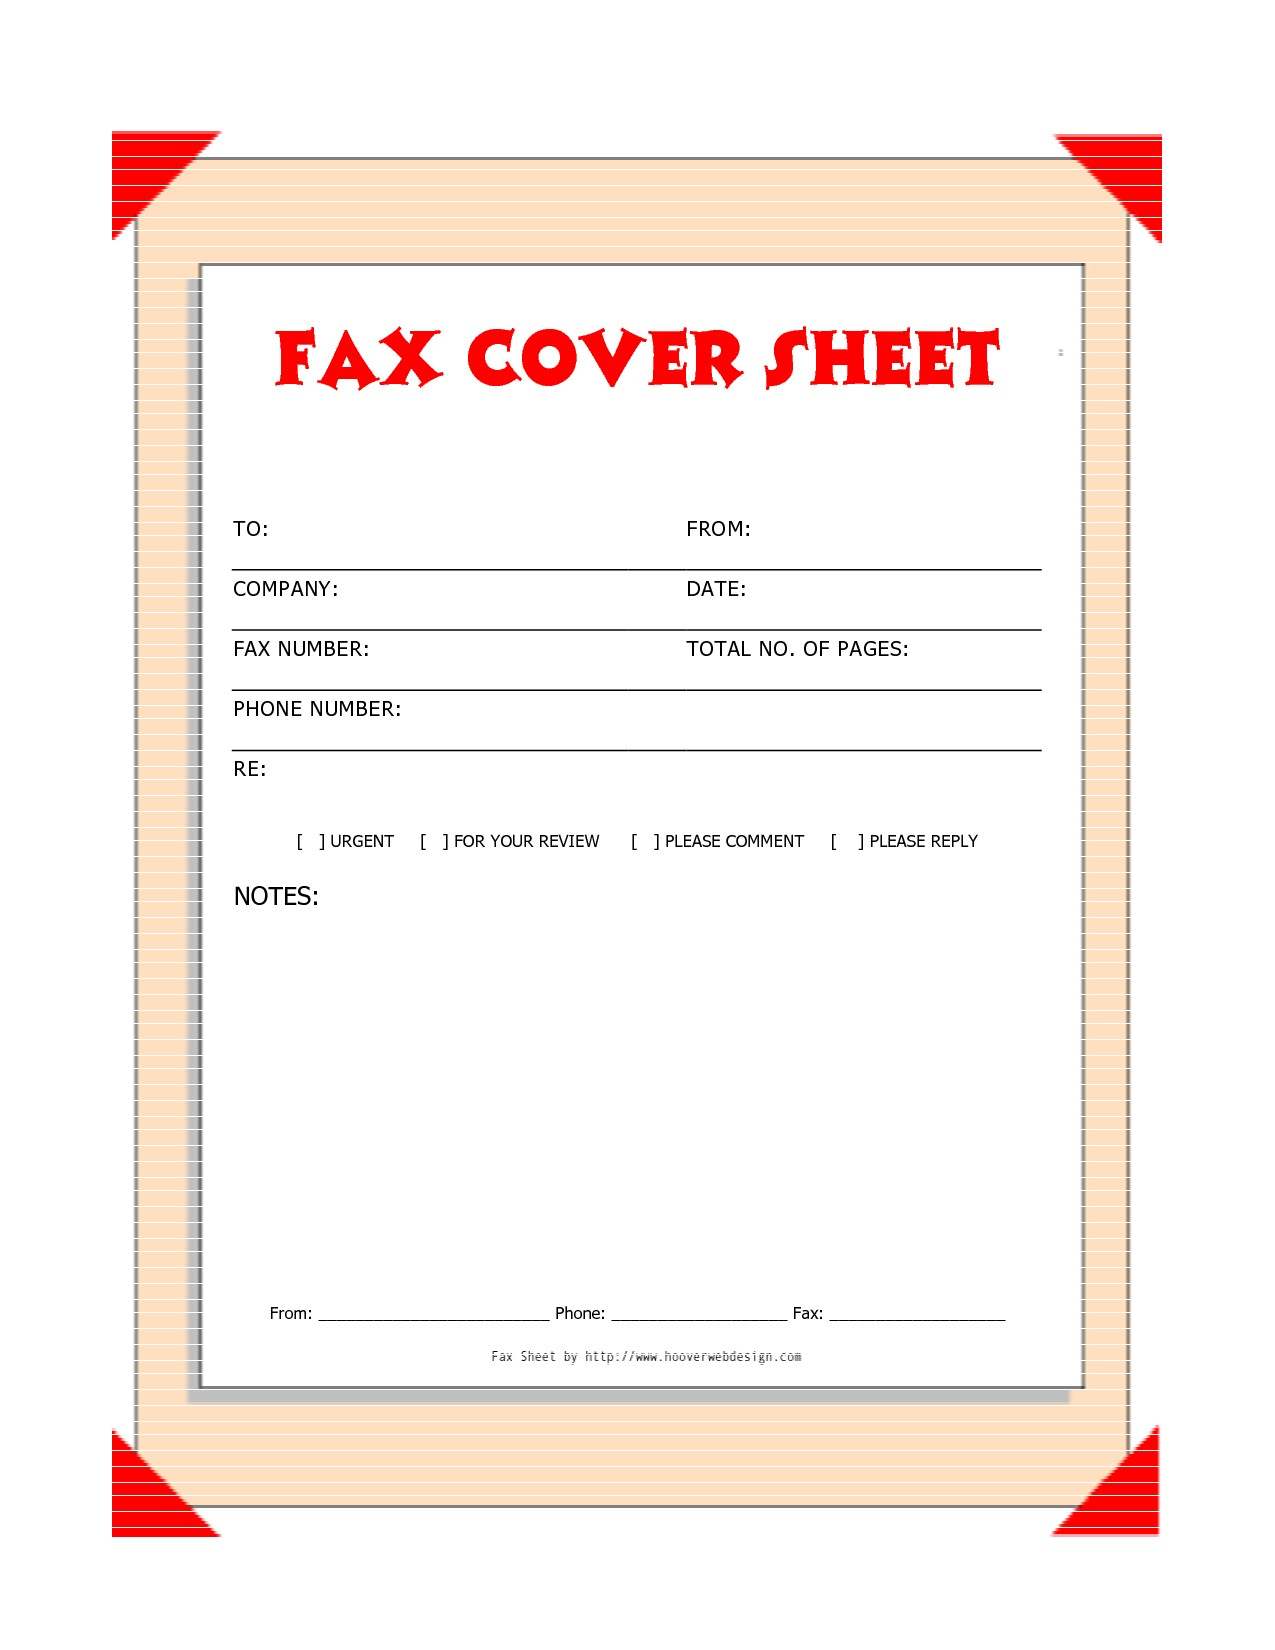 Free Downloads Fax Covers Sheets Free Printable Fax